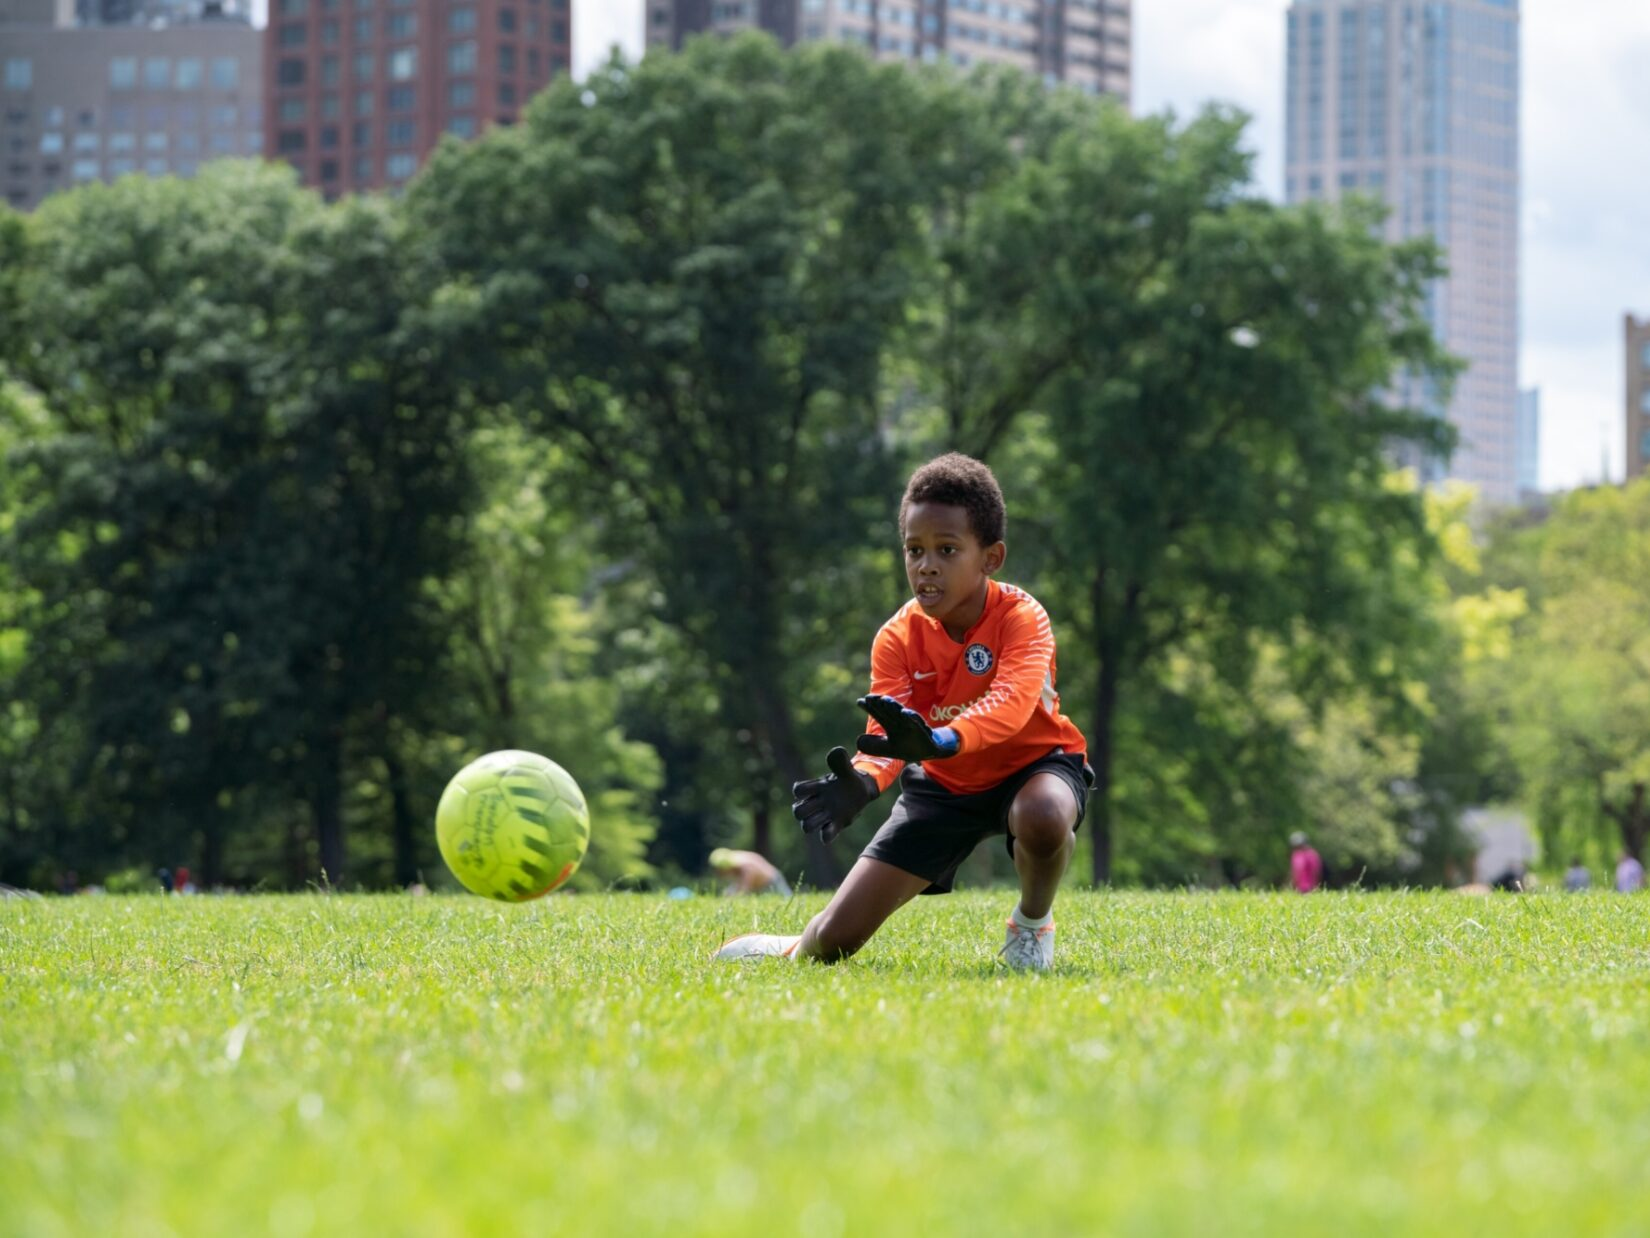 A young goalie keeps his eye on the ball on the North Meadow with the skyline in the background